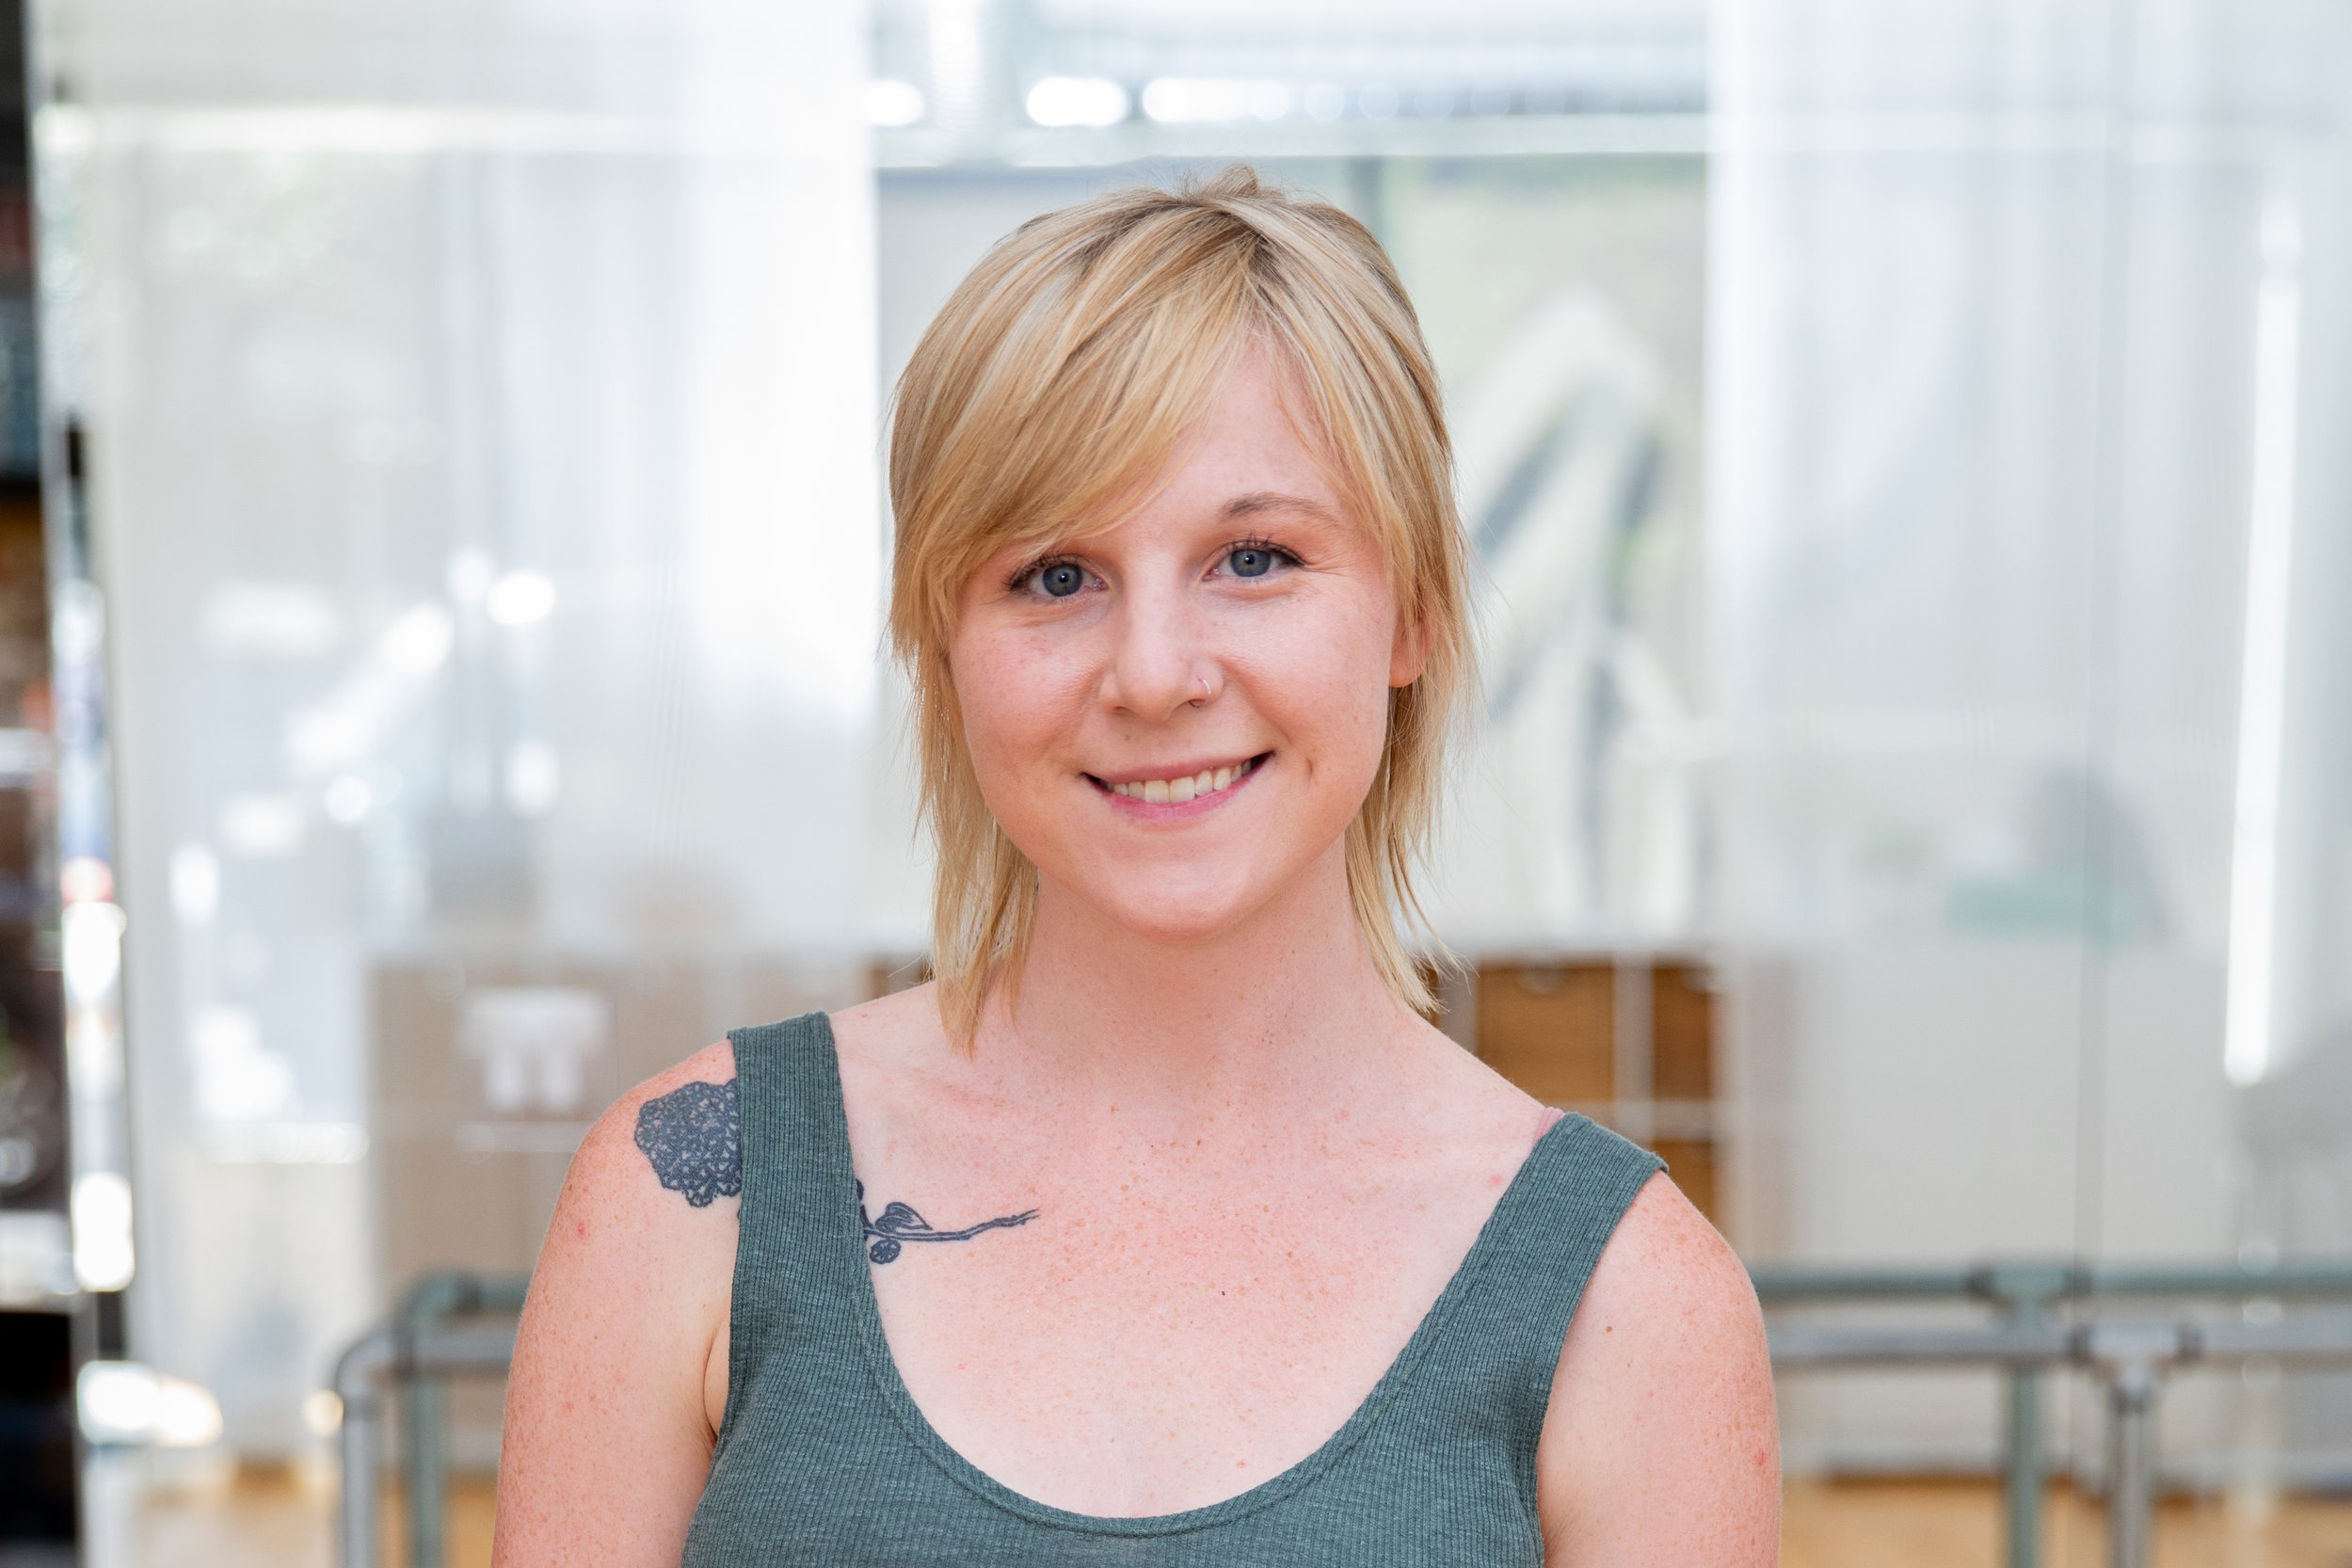 Paige P. - TrainingGrand Jete Barre, BarreAmed, NeighborhoodBarre, Balanced Body Reformer, Stott Chair and Reformer, Polestar Pilates ComprehensiveExperience8 years of Barre, 5 years of HIIT and strength/conditioning, 3 years of Pilates on the ApparatusTeaching GoalsHelp people find a strong connection with their mind and body. To make their health journey fun, creative, and educational. To create long term goals and work on meeting milestones in and out of the studio.Outside the StudioI travel tons! I adore reading memoirs and biographies. I bike because it's freeing and I love any creative outlet. I like to take on random interests that others show me :).